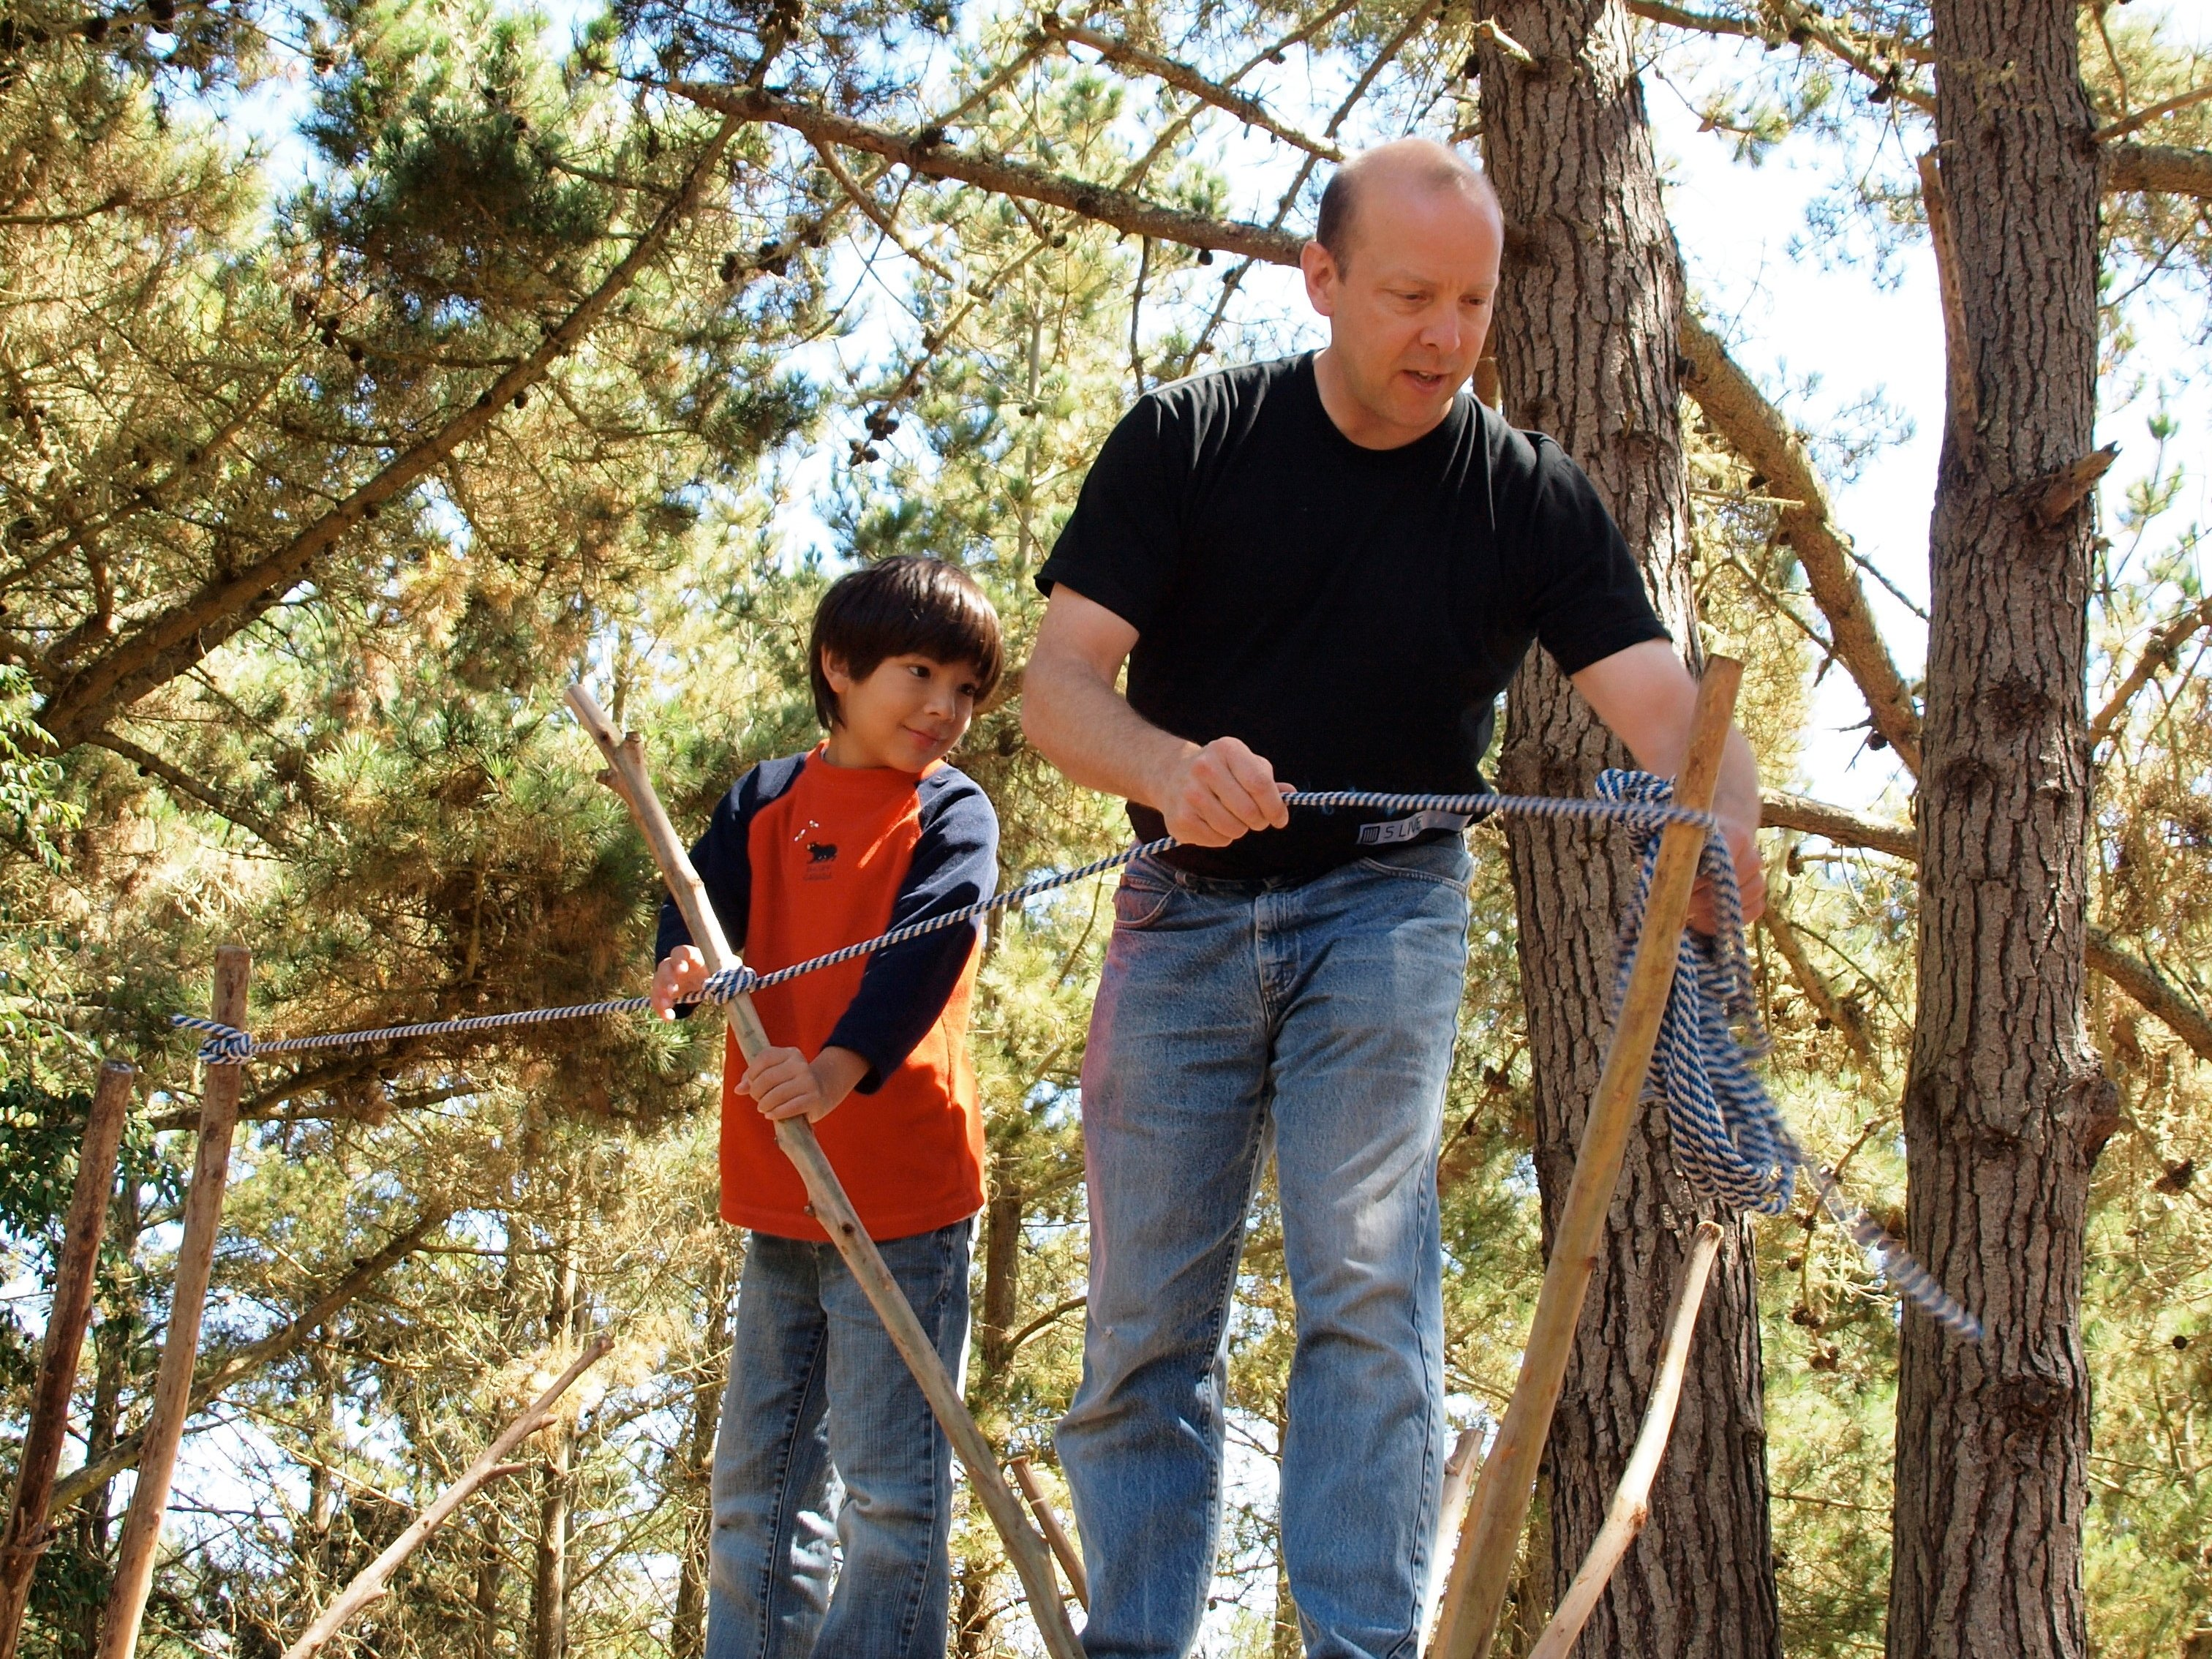 Gever Tulley tying a rope